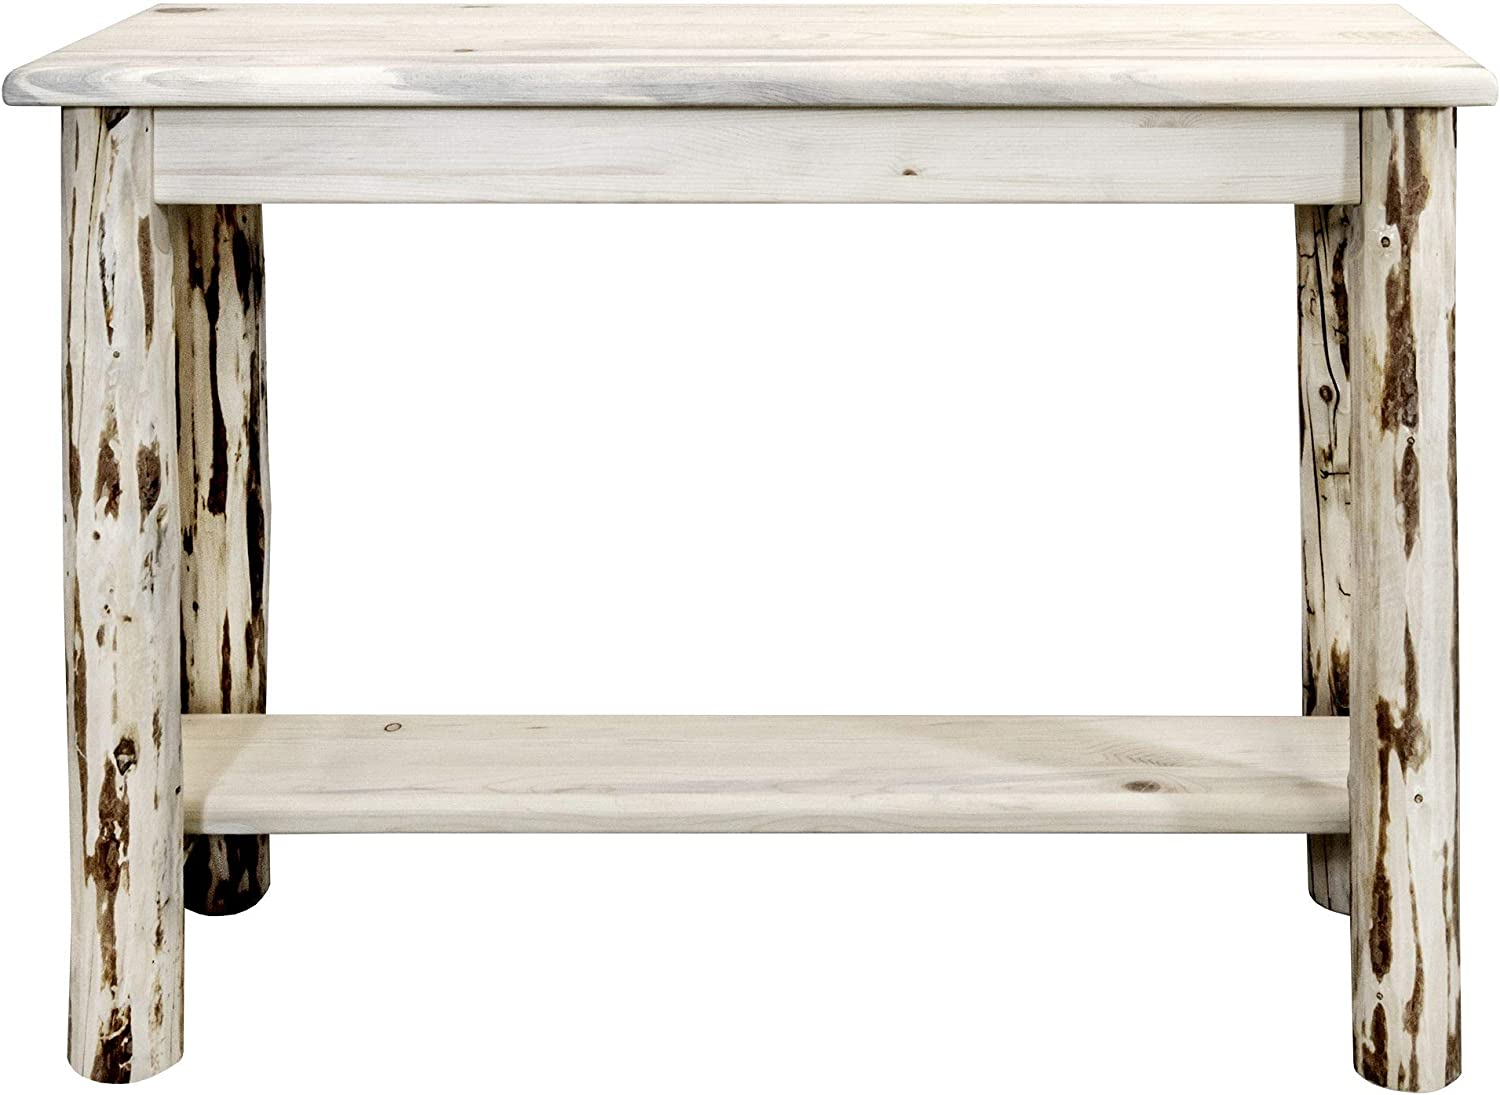 Amazon Com Montana Woodworks Montana Collection Console Table With Shelf Ready To Finish Furniture Decor